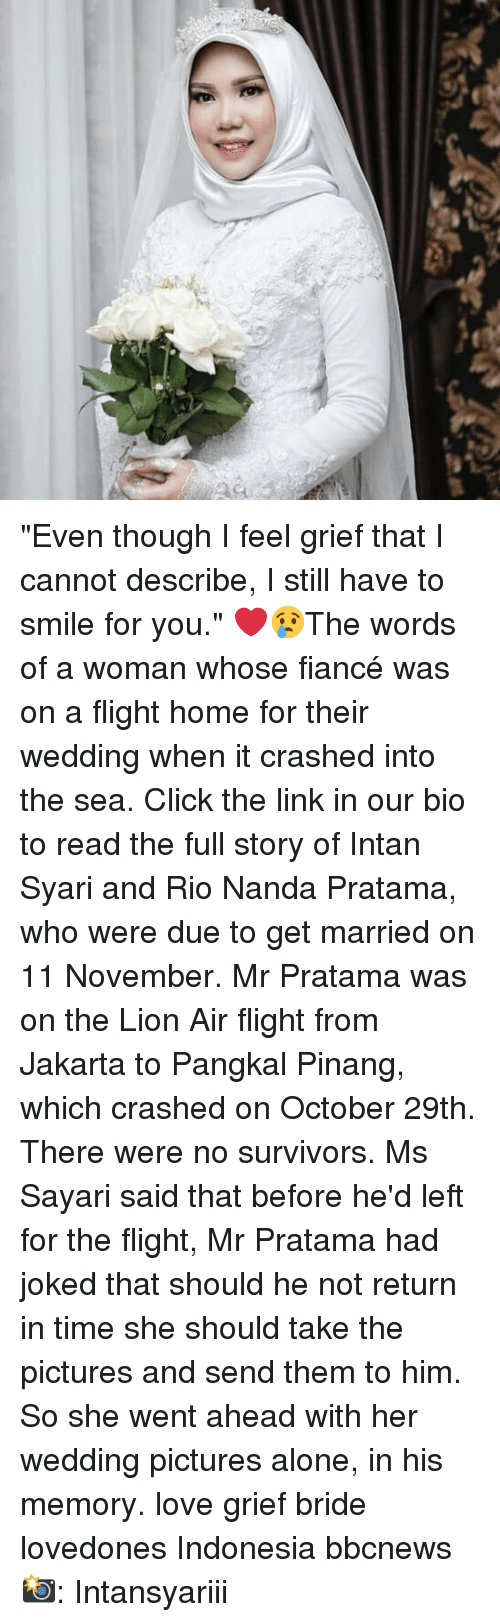 """Being Alone, Click, and Love: """"Even though I feel grief that I cannot describe, I still have to smile for you."""" ❤️😢The words of a woman whose fiancé was on a flight home for their wedding when it crashed into the sea. Click the link in our bio to read the full story of Intan Syari and Rio Nanda Pratama, who were due to get married on 11 November. Mr Pratama was on the Lion Air flight from Jakarta to Pangkal Pinang, which crashed on October 29th. There were no survivors. Ms Sayari said that before he'd left for the flight, Mr Pratama had joked that should he not return in time she should take the pictures and send them to him. So she went ahead with her wedding pictures alone, in his memory. love grief bride lovedones Indonesia bbcnews 📸: Intansyariii"""